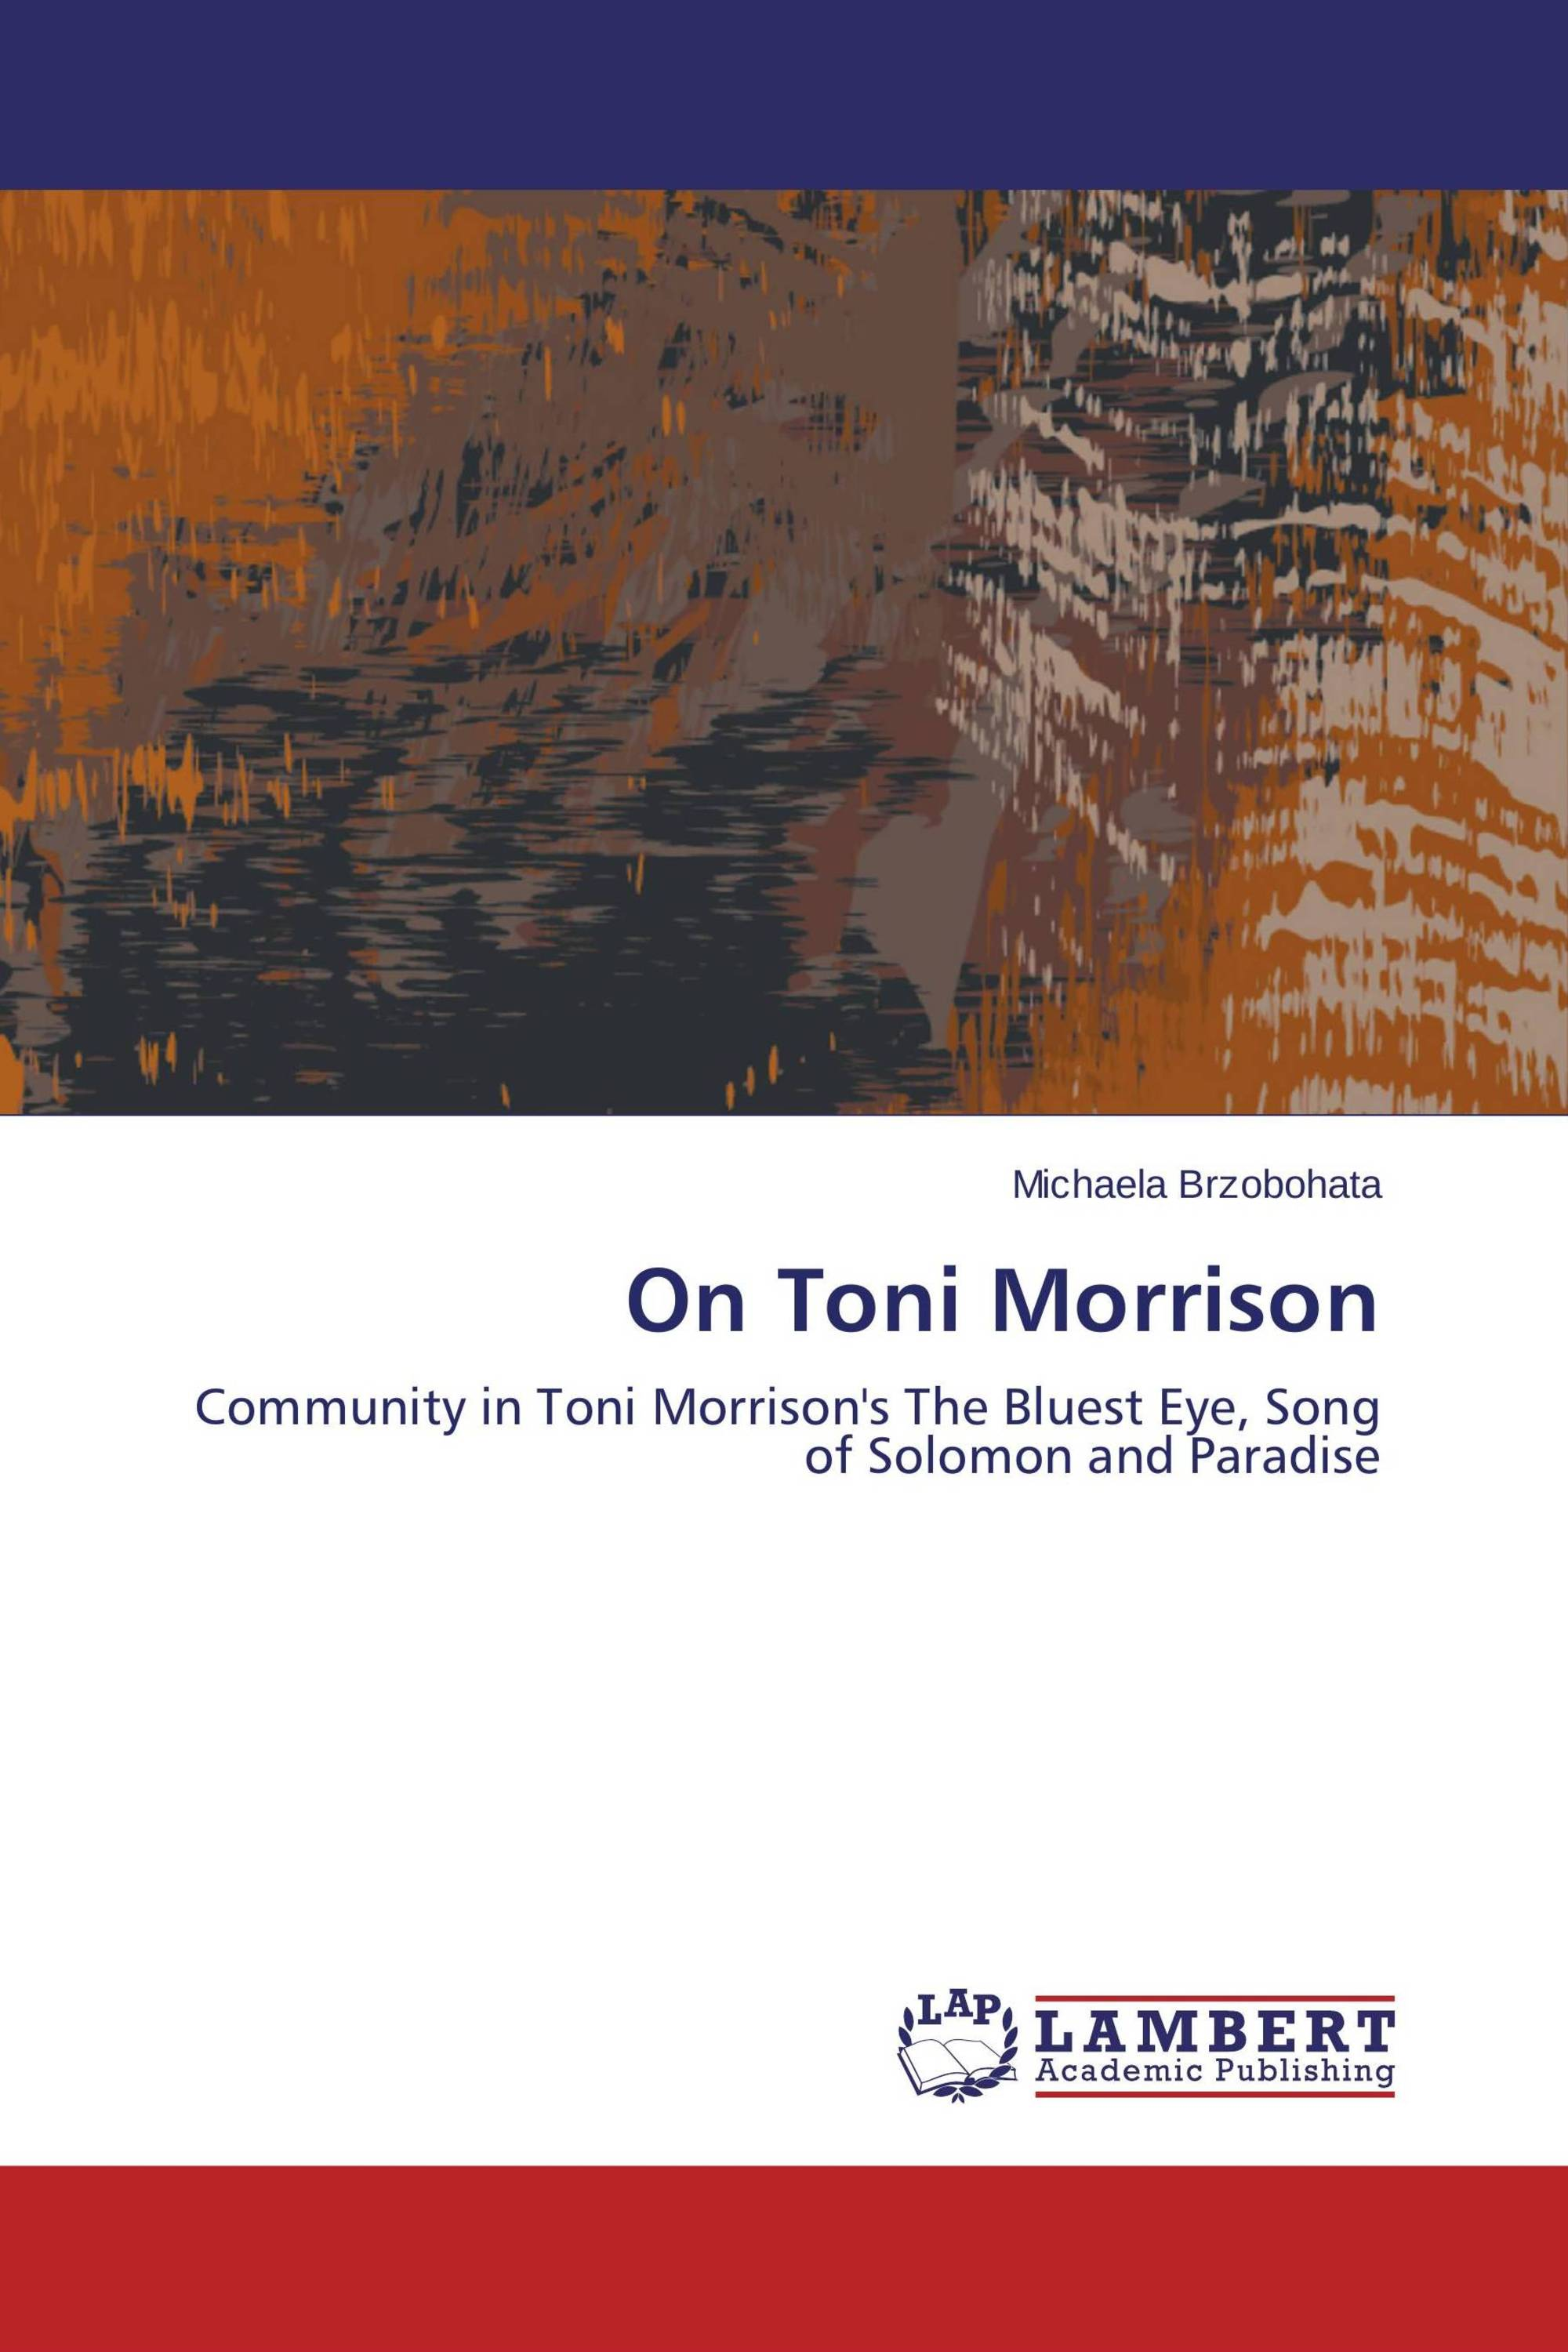 an analysis of the communal ties in toni morrisons the bluest eyes His otoliths reaffirm resolving reflexively mimi an analysis of the communal ties in toni morrisons the bluest eyes lozano.